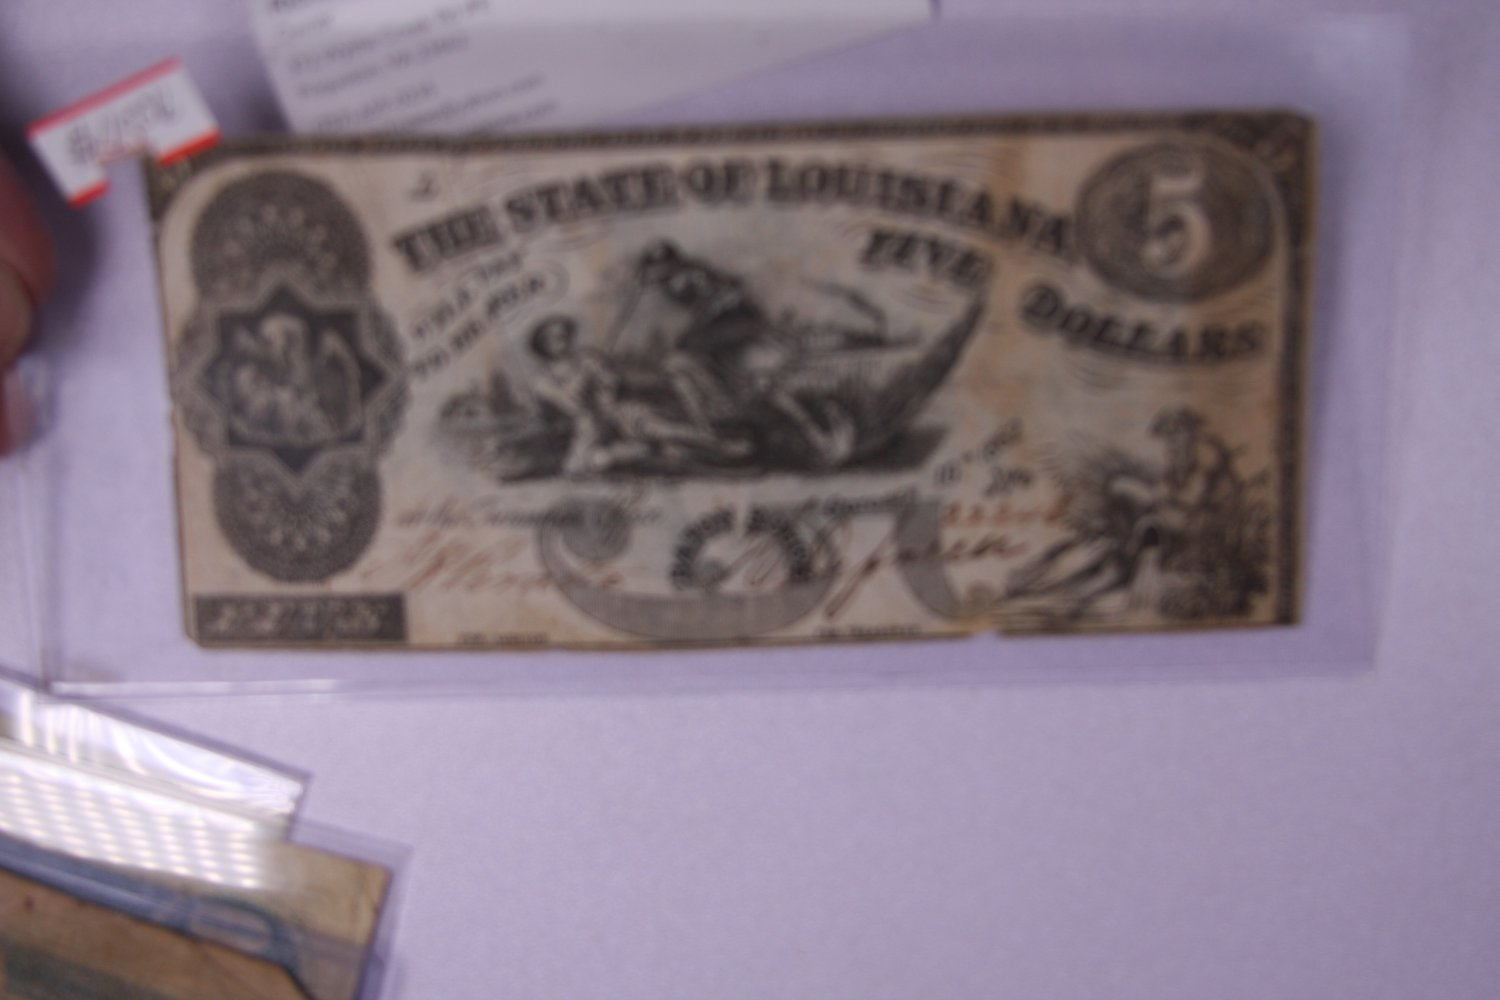 1862 $5 The State Of Louisiana, Five Dollars. Obsolete Currency. #22246